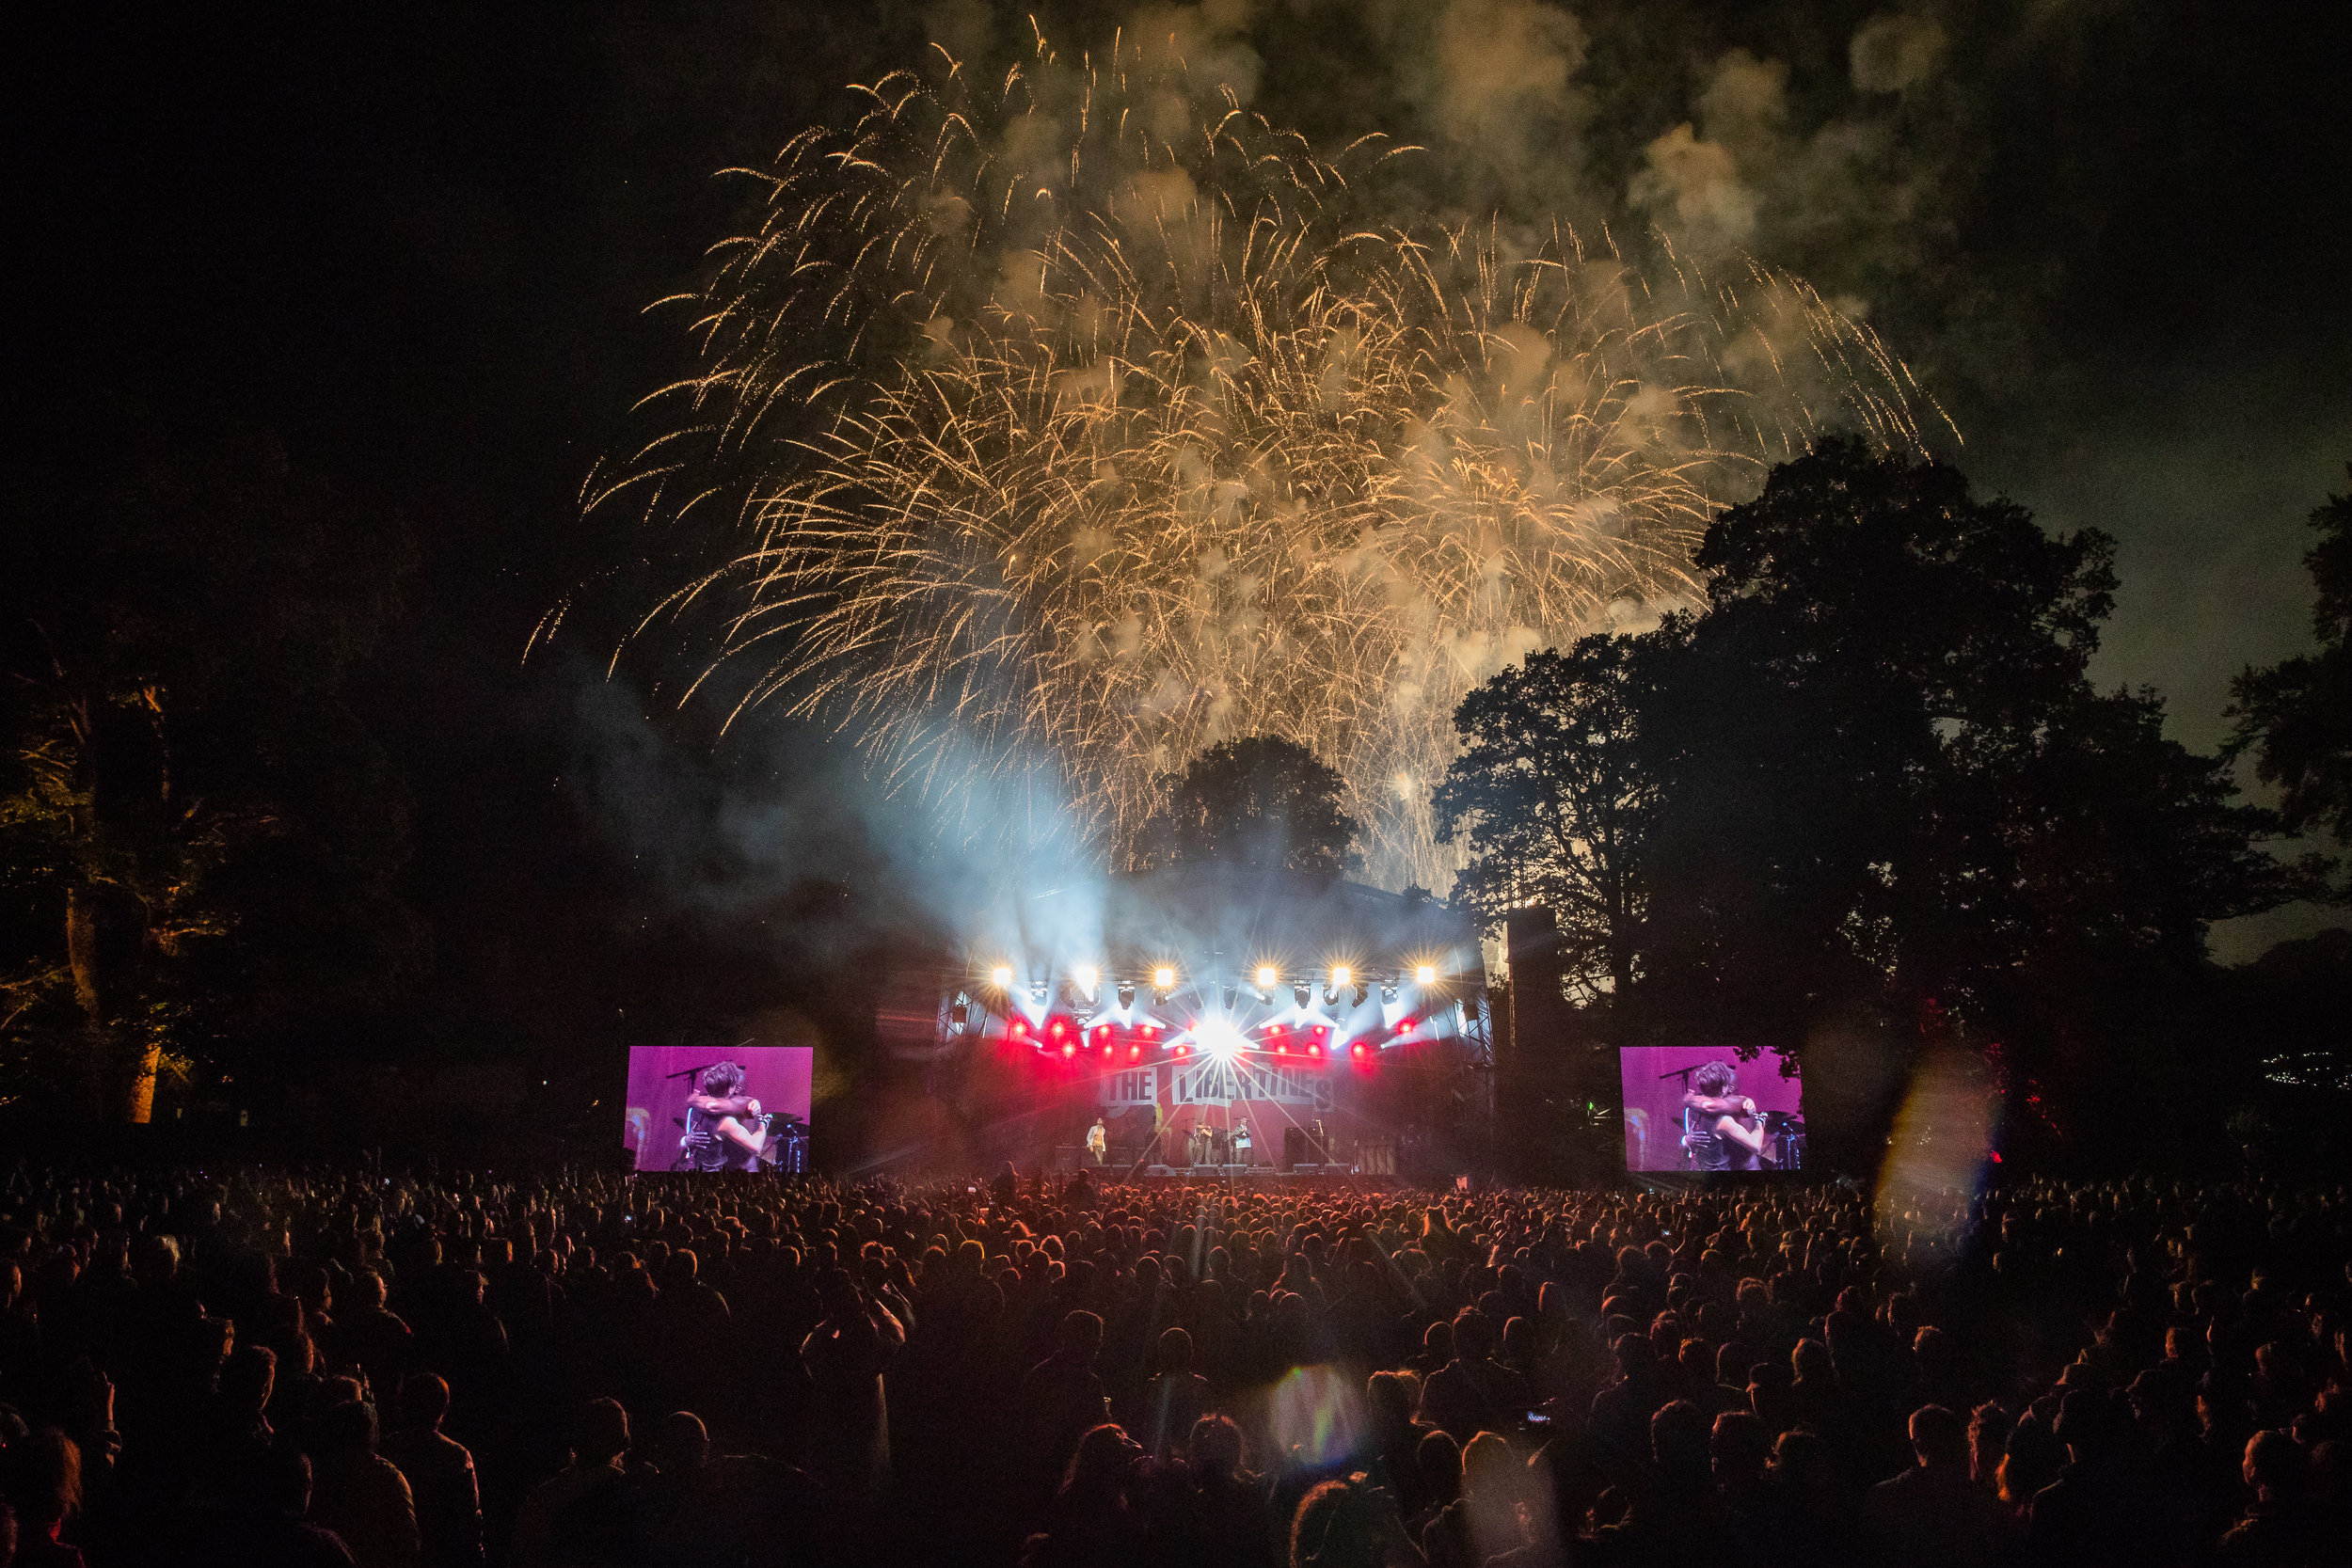 THE LIBERTINES CLOSING THE FINAL DAY AT KENDALL CALLING 2018 - 29.07.2018  PICTURE BY: JODY HART PHOTOGRAPHY